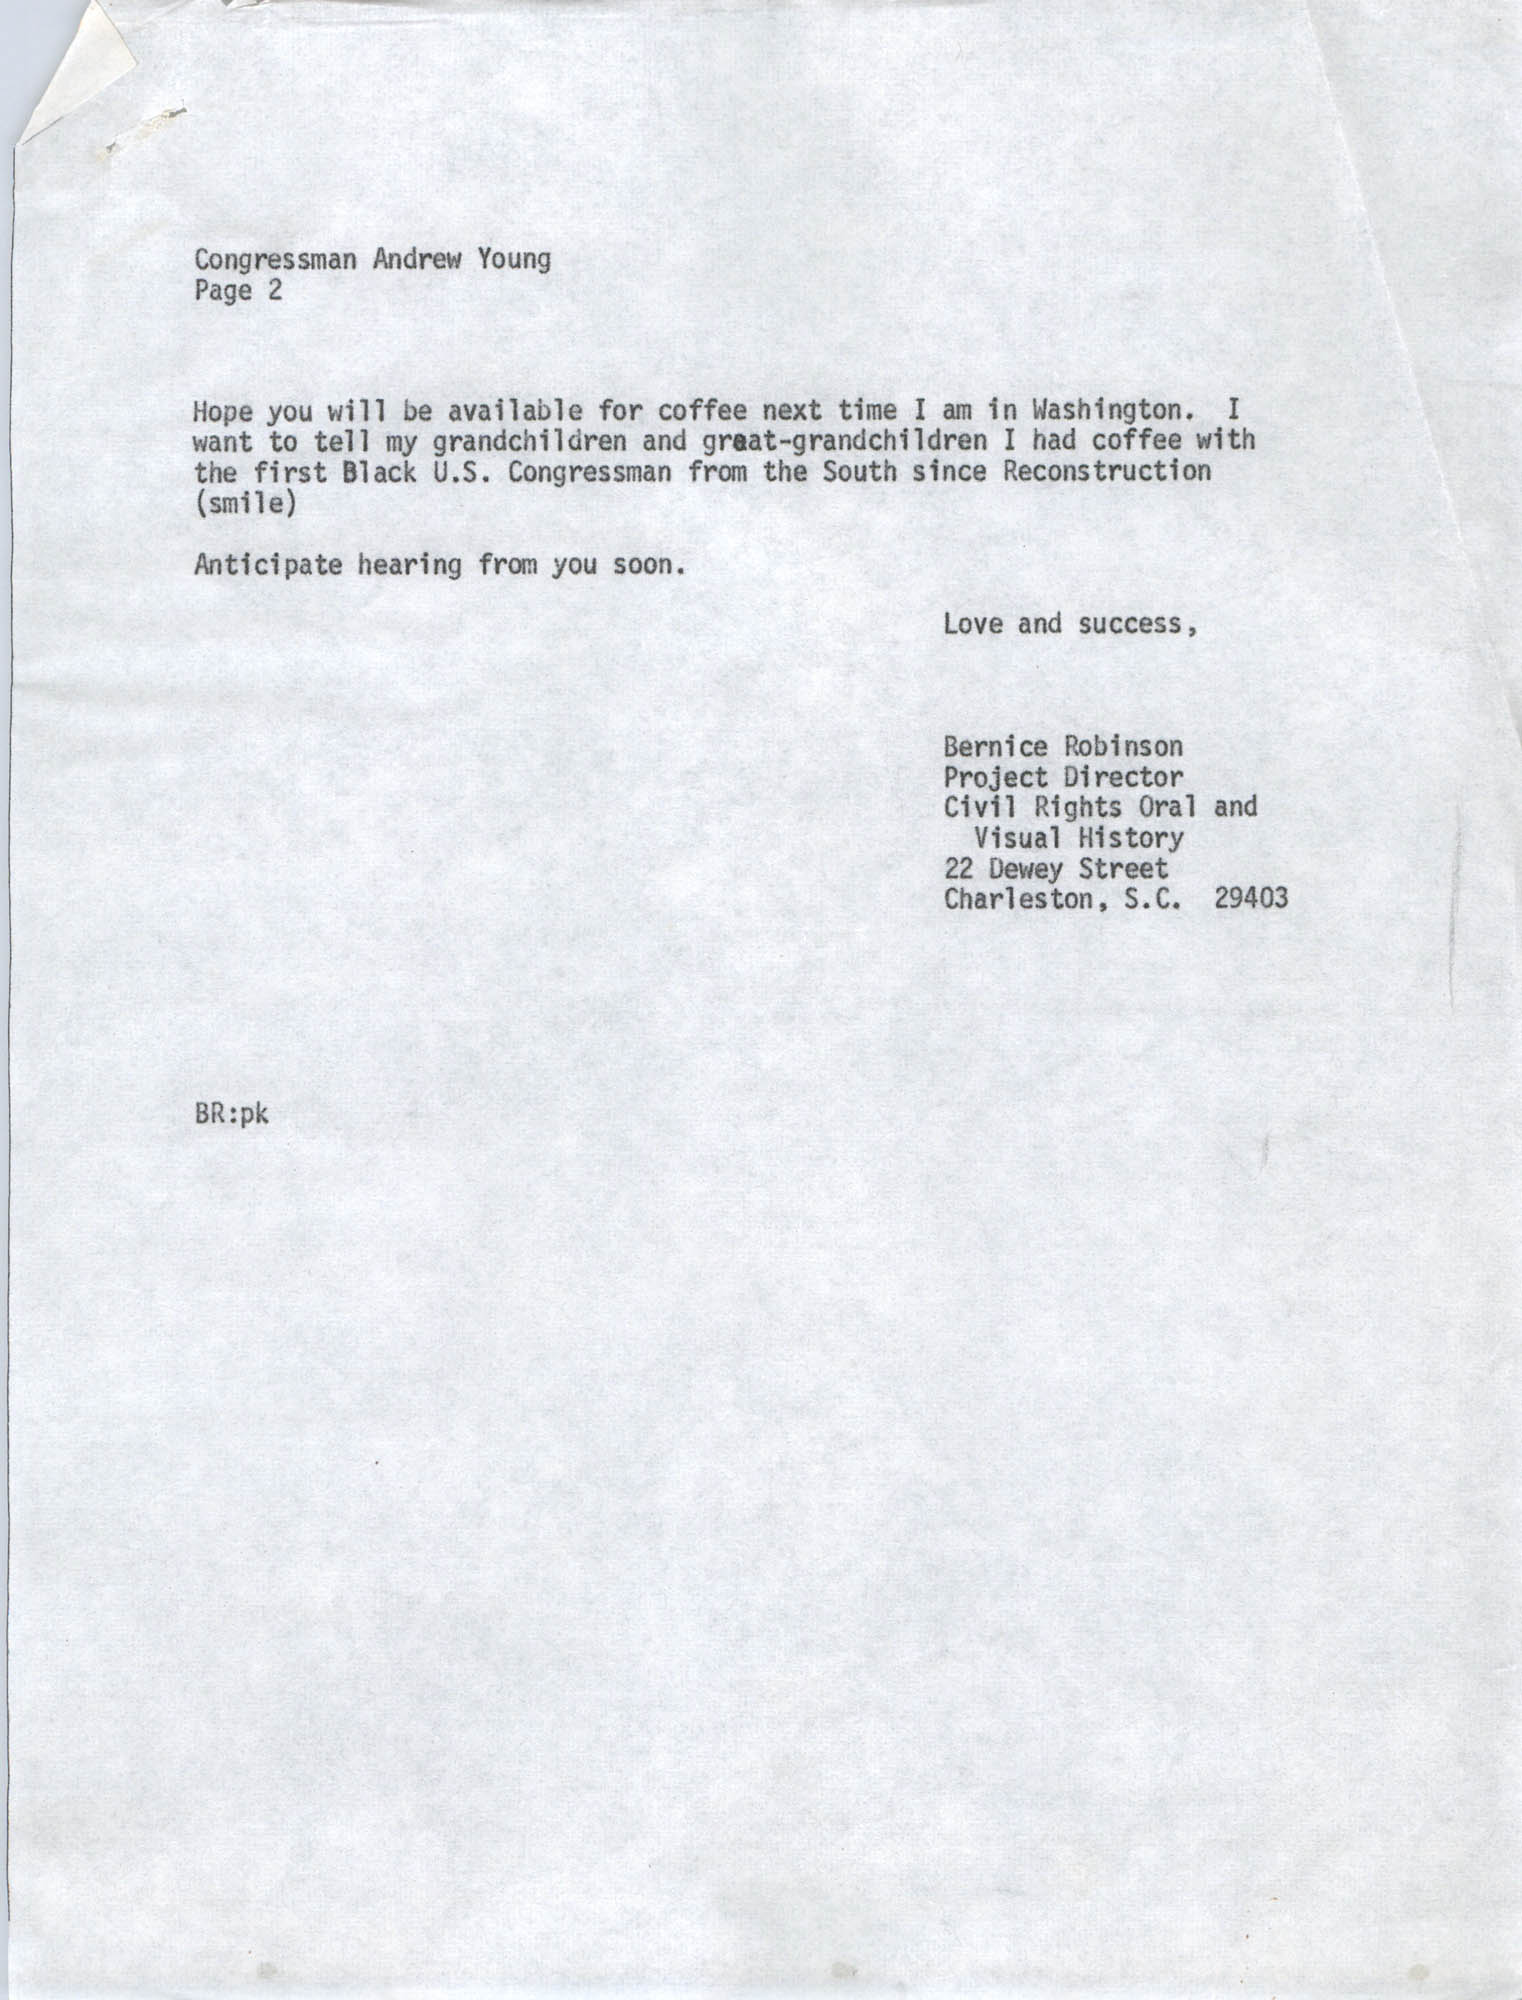 Letter from Bernice Robinson to Andrew Young, May 4, 1973, Draft Page 2